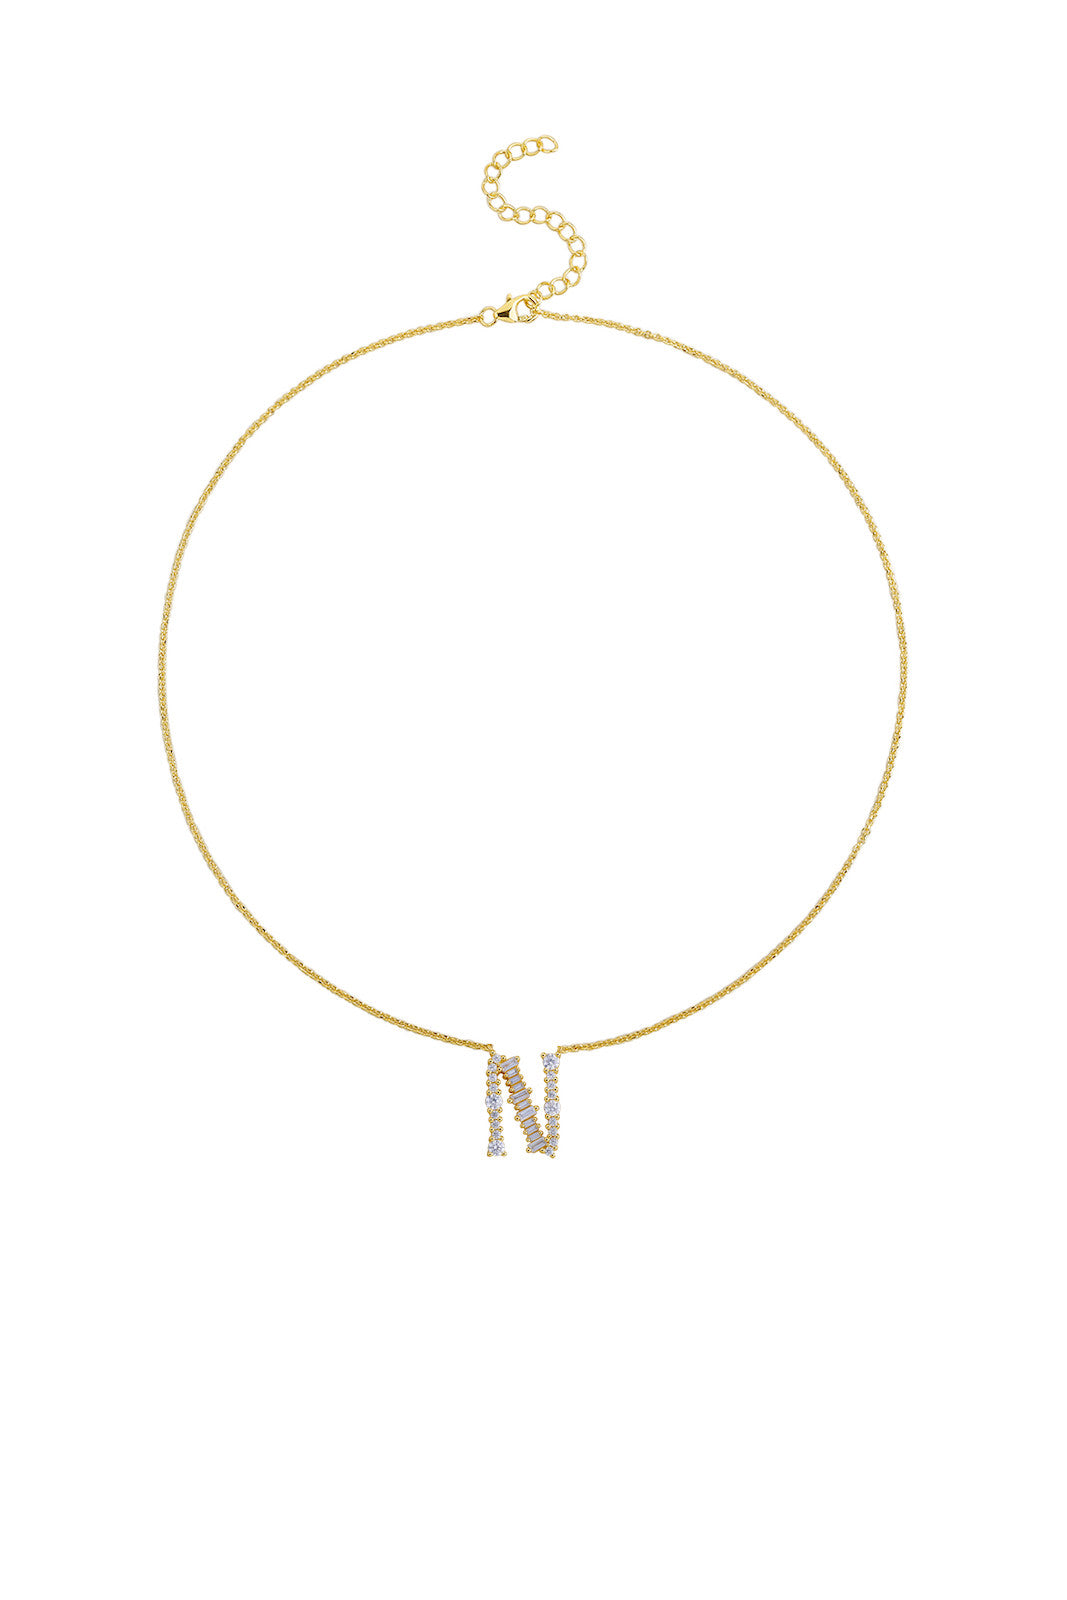 Gold Plated Sterling Silver Initial Necklace - Letter N Detail